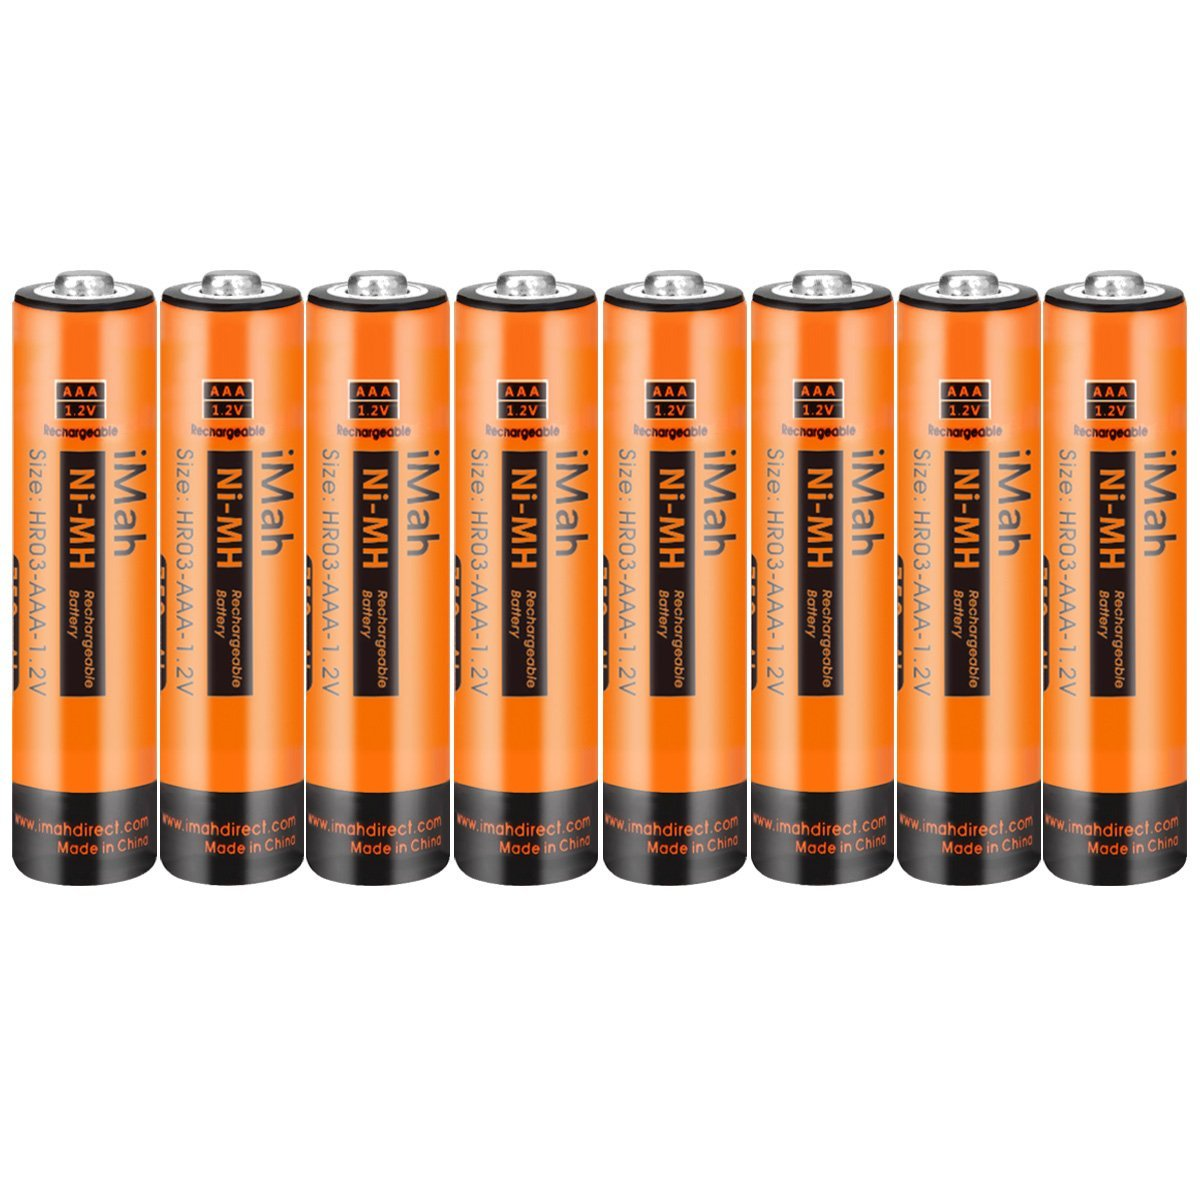 8-Pack iMah HR03 AAA Rechargeable Batteries for Cordless Phone Pre-charged